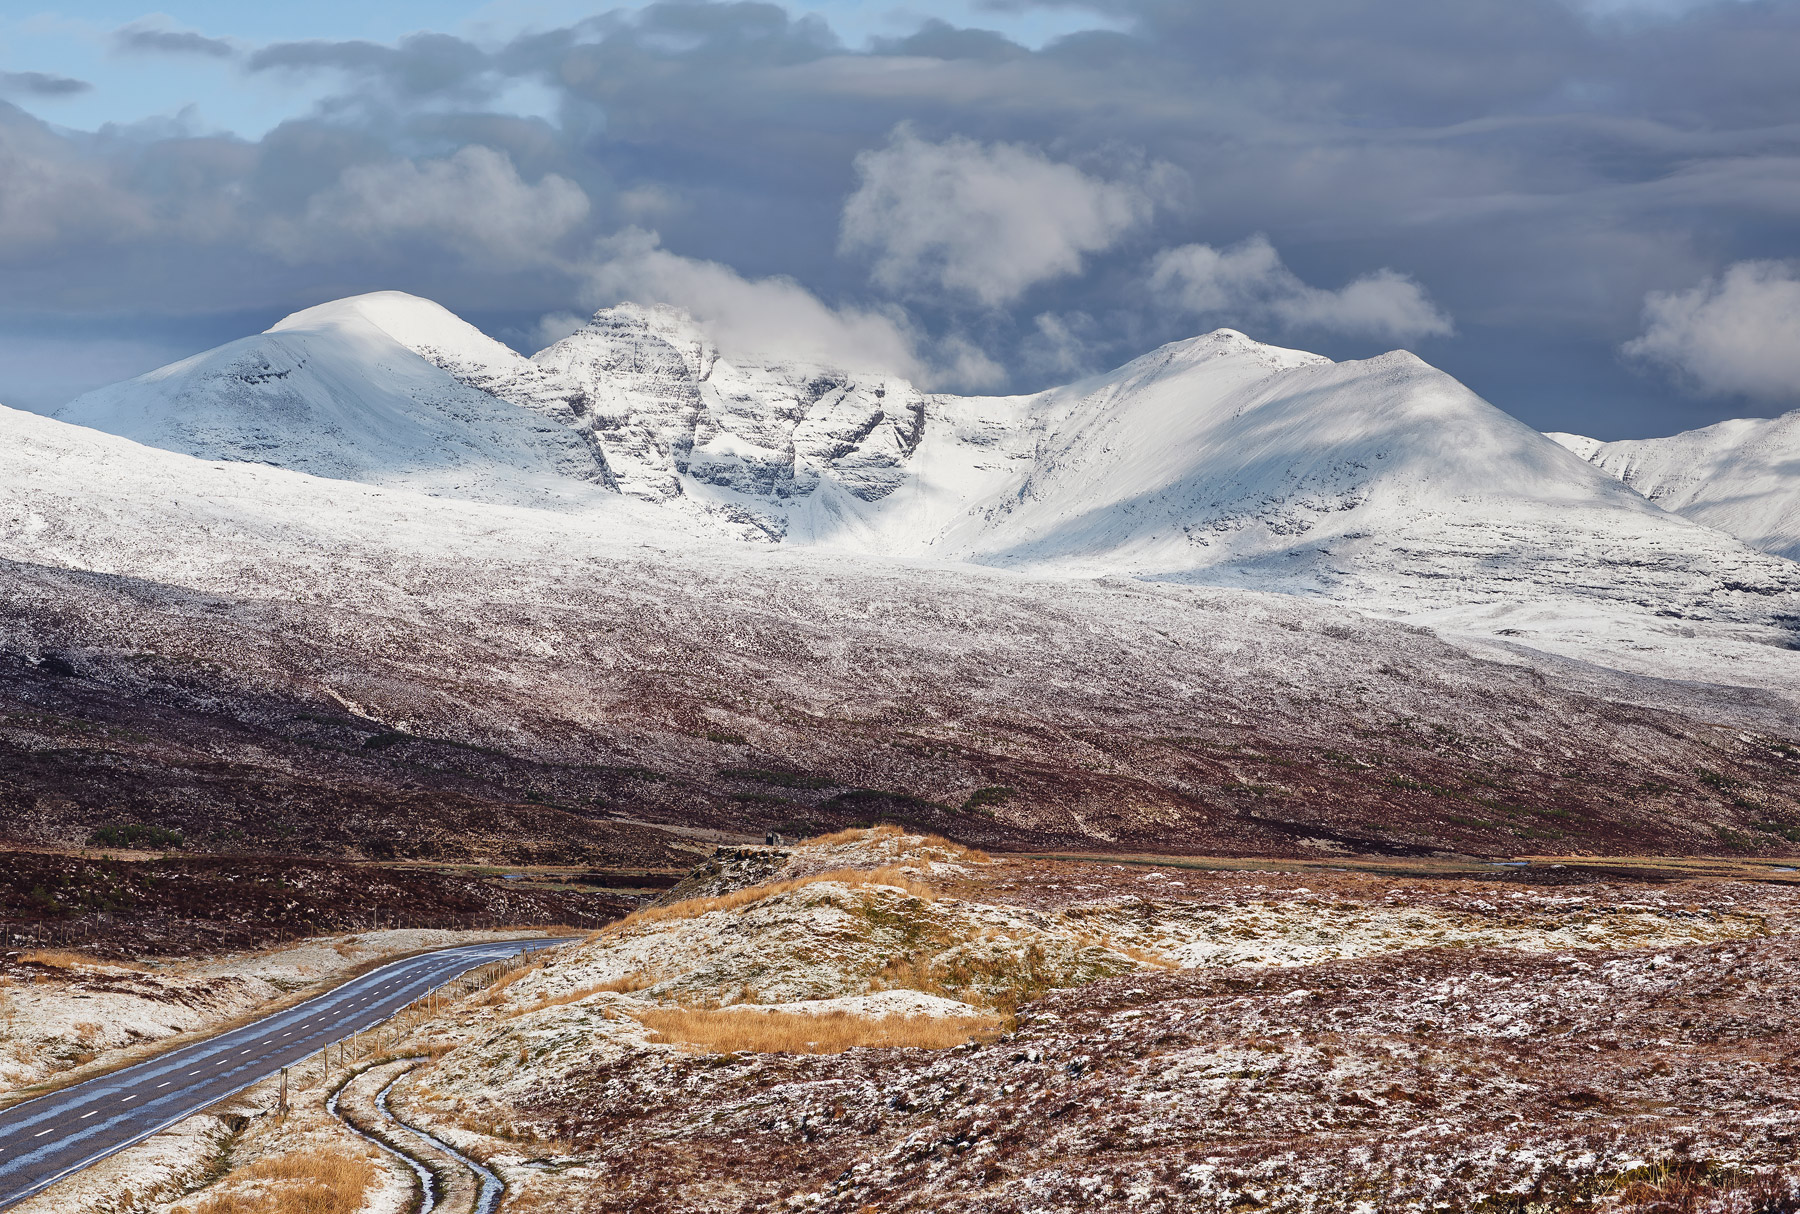 Snow clad mountains, dappled sunshine and dusted icing sugar on mighty An Teallach near the Braemore Junction, close to Dundonnell in late Spring